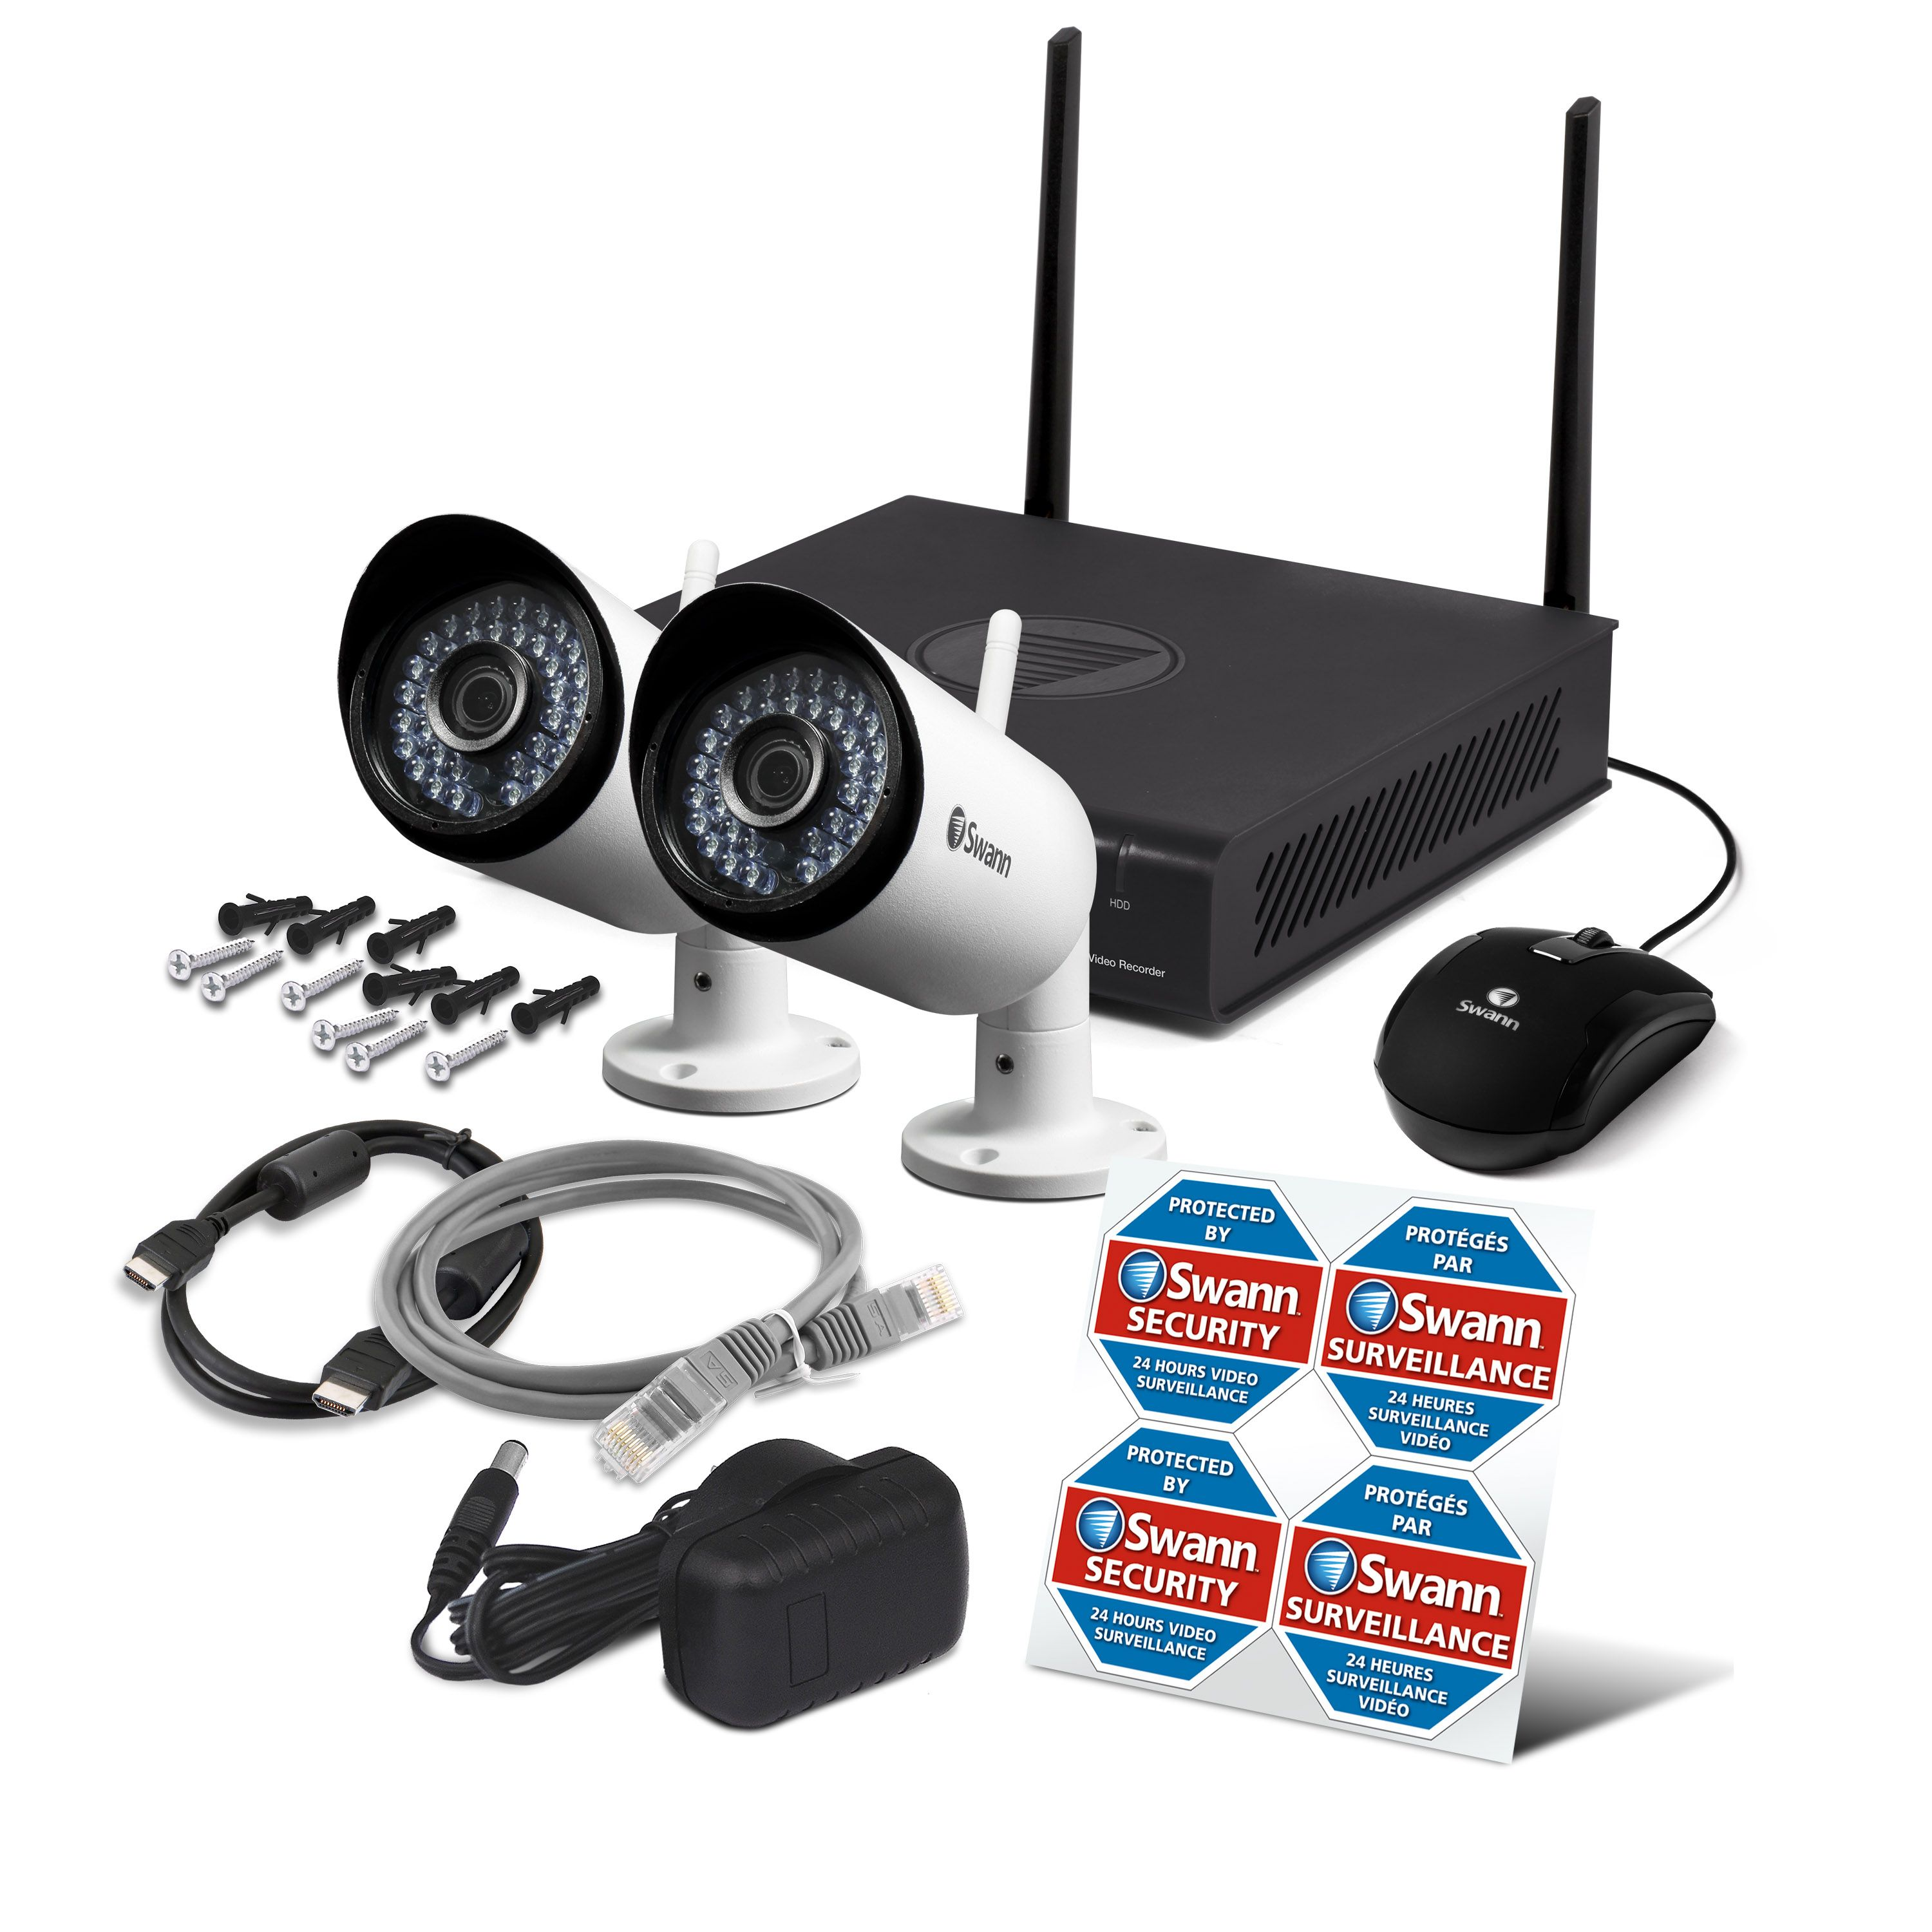 Swann 1080p Wi-fi Security Kit With 2 Cameras | Home Security | More